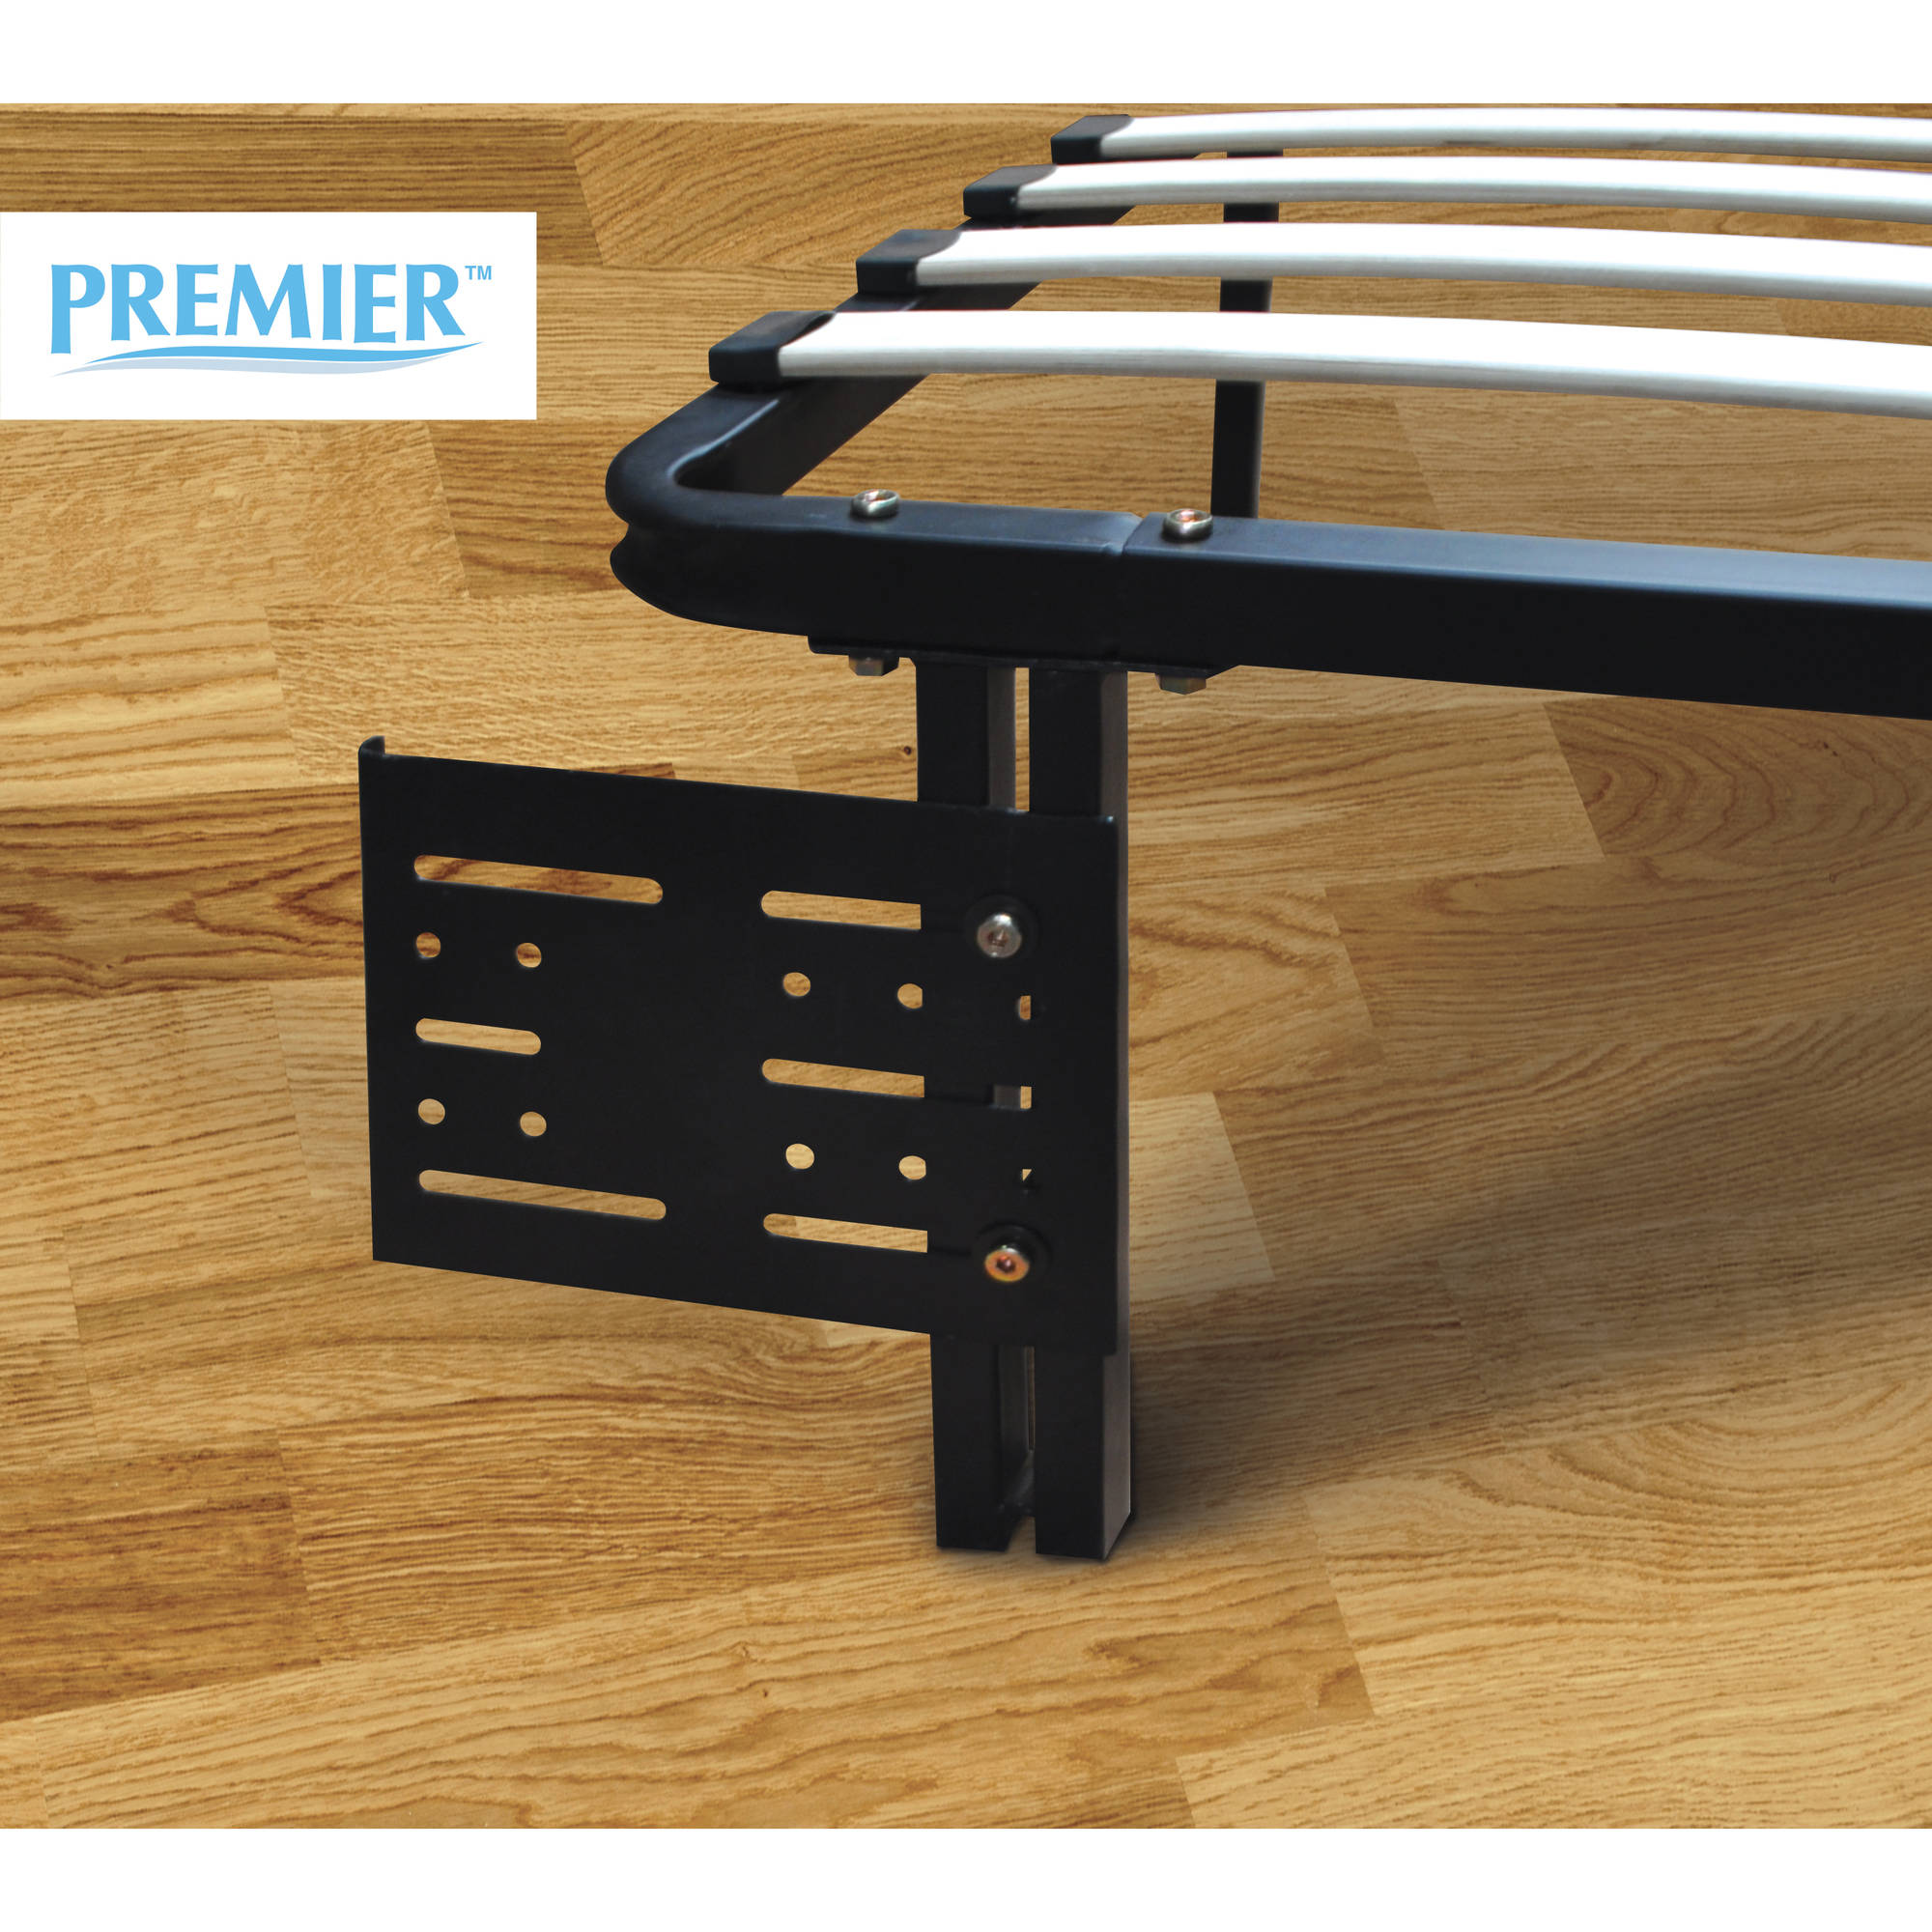 Premier Flex Headboard/Footboard Brackets, Black